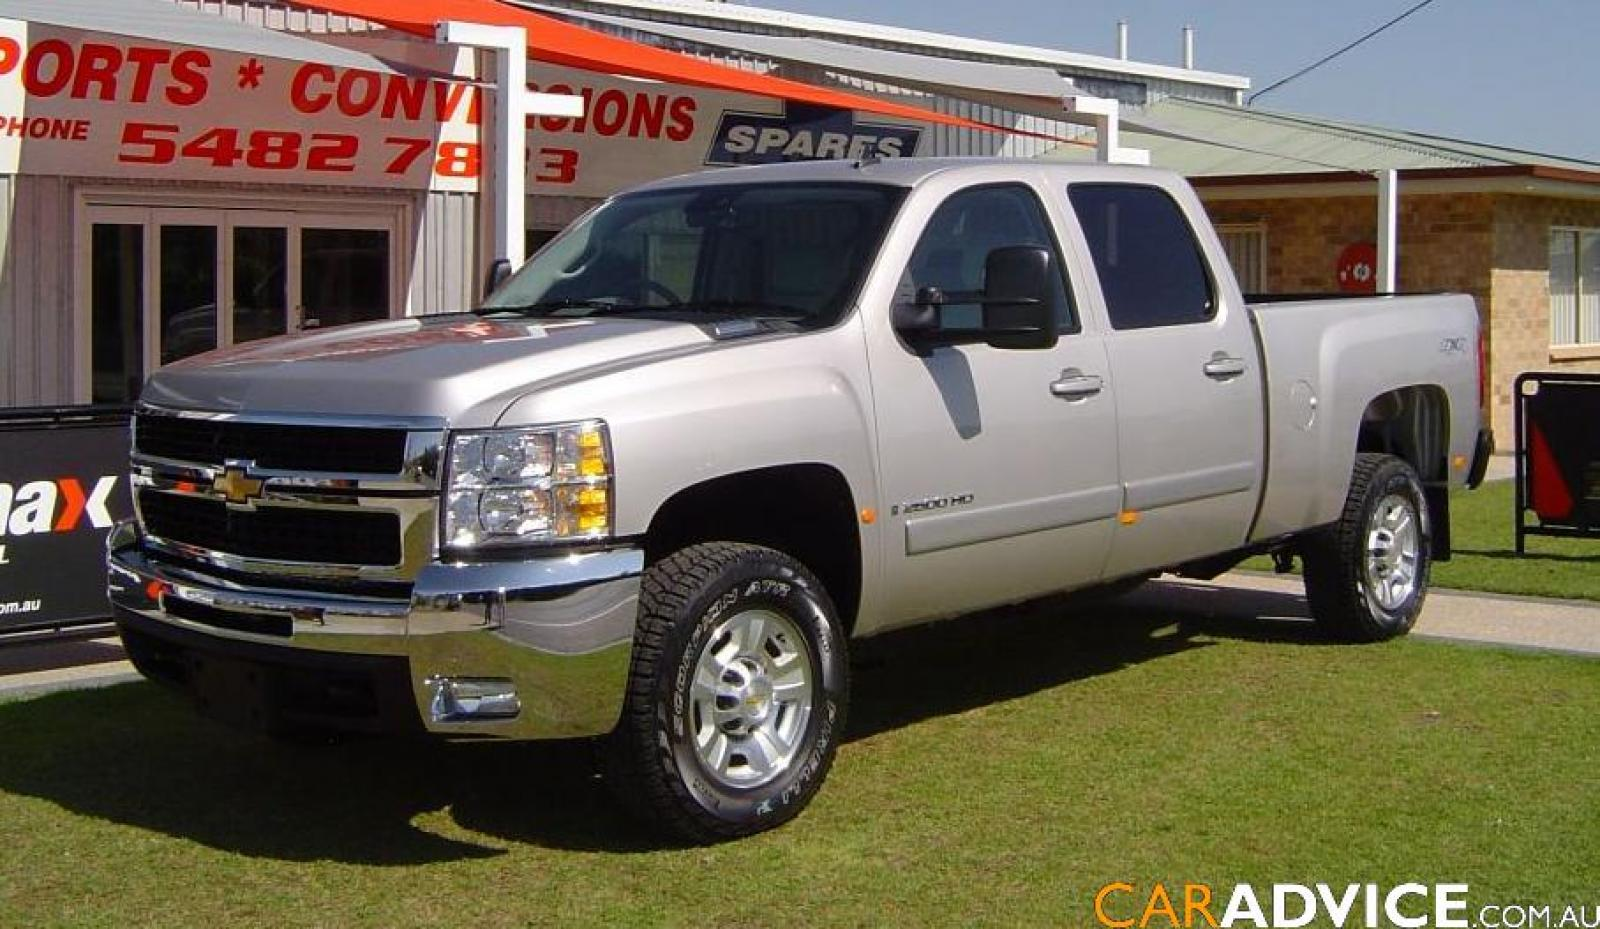 2008 chevrolet silverado 2500hd information and photos zombiedrive. Black Bedroom Furniture Sets. Home Design Ideas